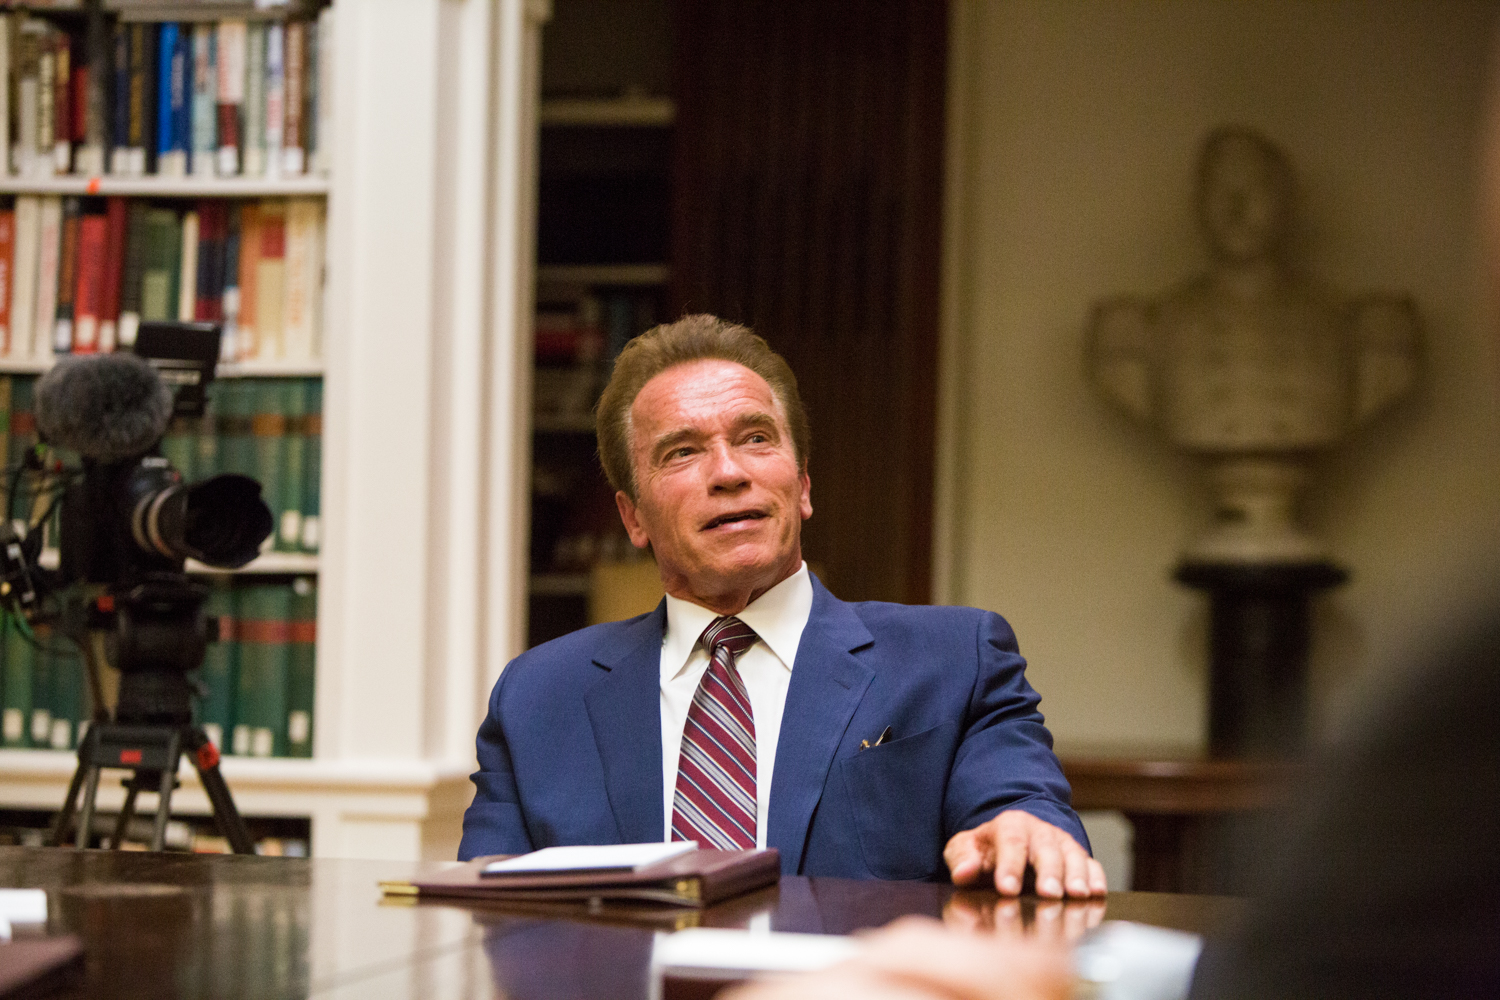 Arnold Schwarzenegger conducts an interview in Washington, D.C. during  National Geographic Channel 's production of  Years of Living Dangerously .